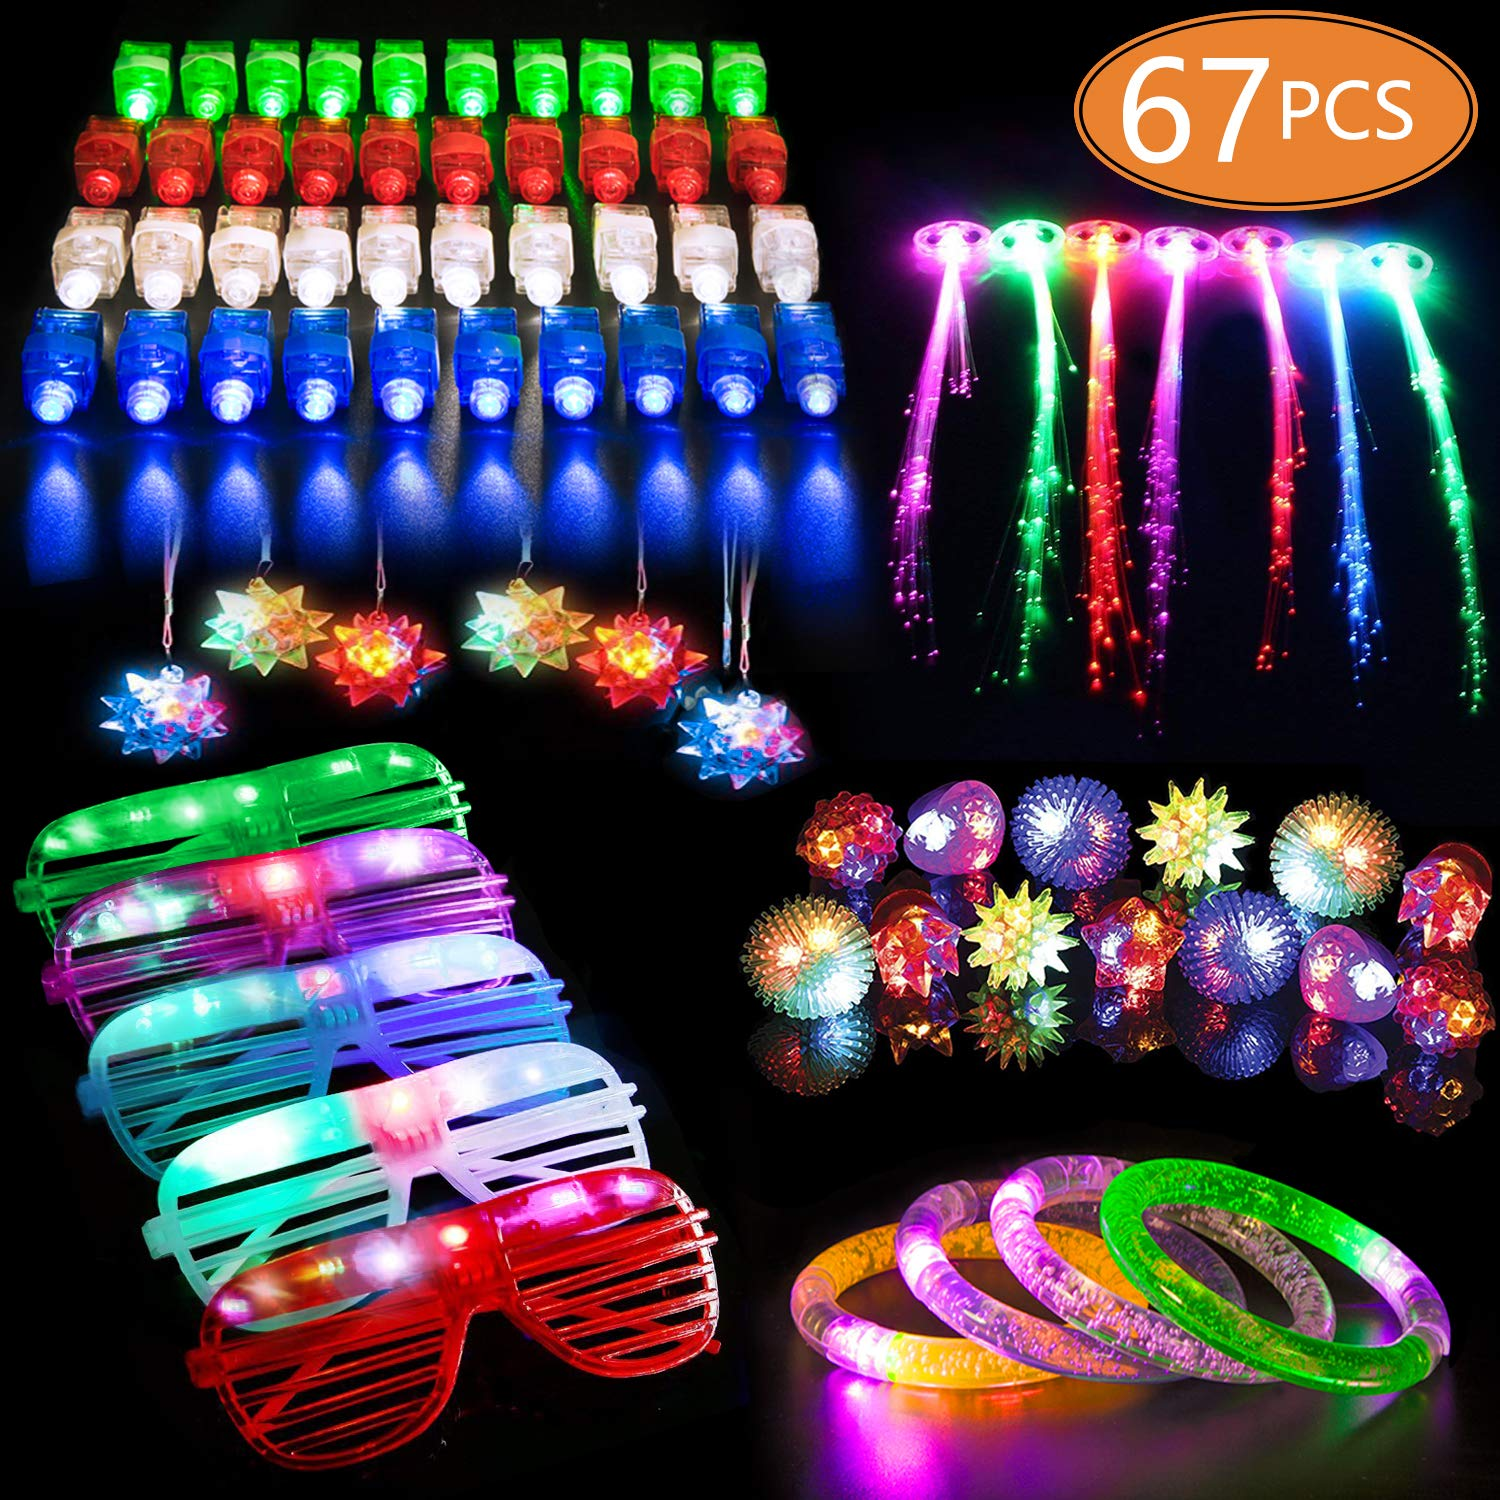 MIBOTE 67 PCs LED Light Up Toys Party Favors Glow in the Dark Party Supplies for Kid/Adults with 40 Finger Lights, 10 Jelly Rings, 5 Flashing Glasses, 4 Bracelets, 4 Fiber Optic Hair Lights and 4 Crystal Necklaces by MIBOTE